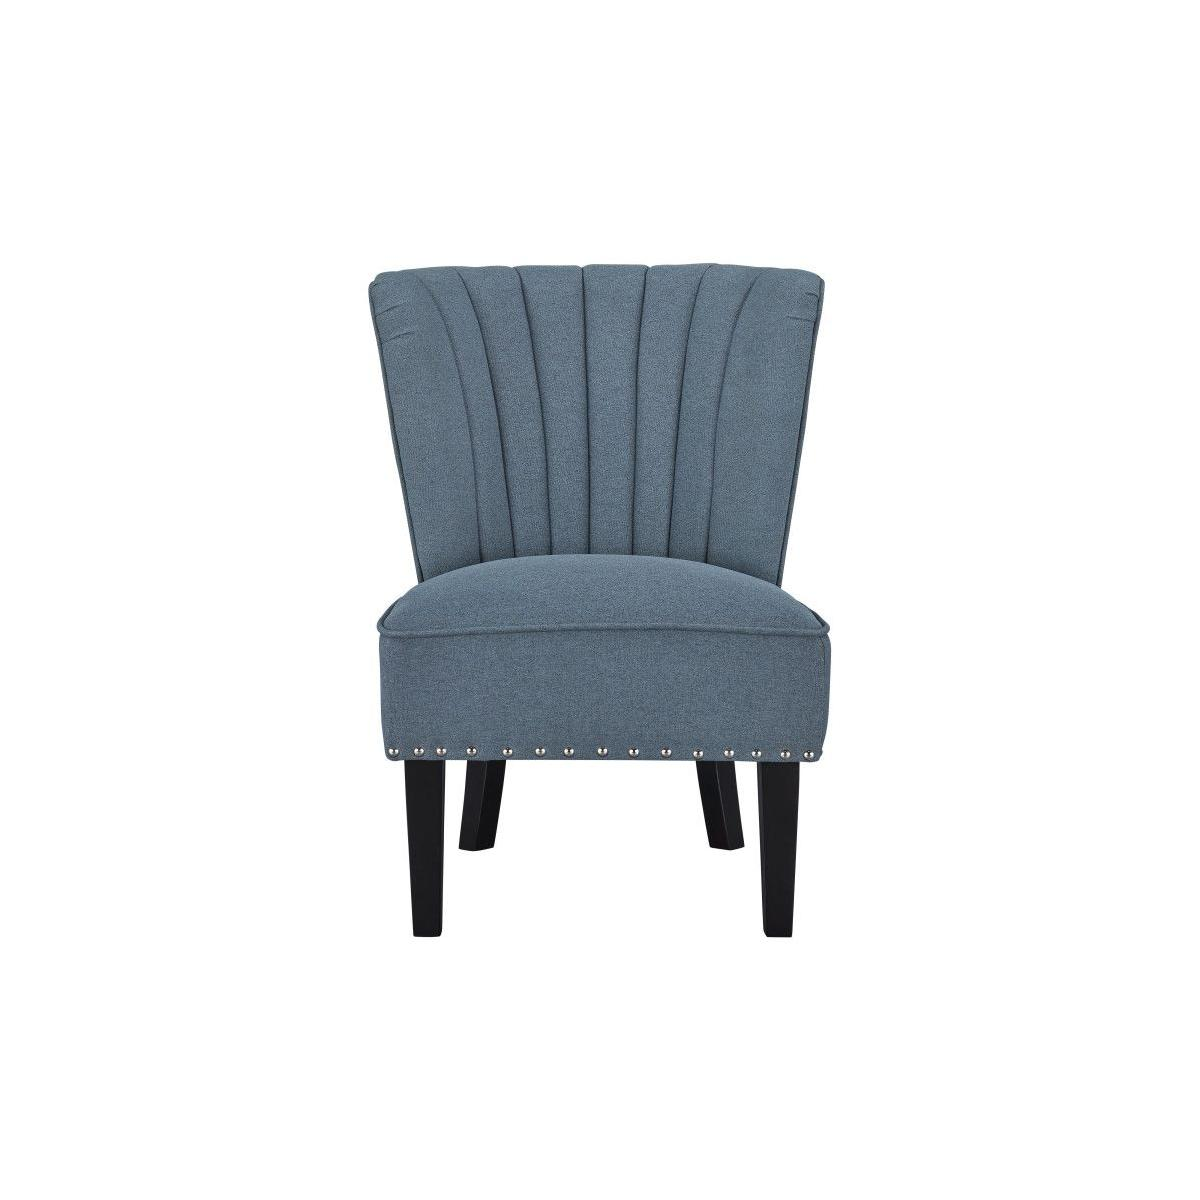 Emporium Accent Chair, Midnight